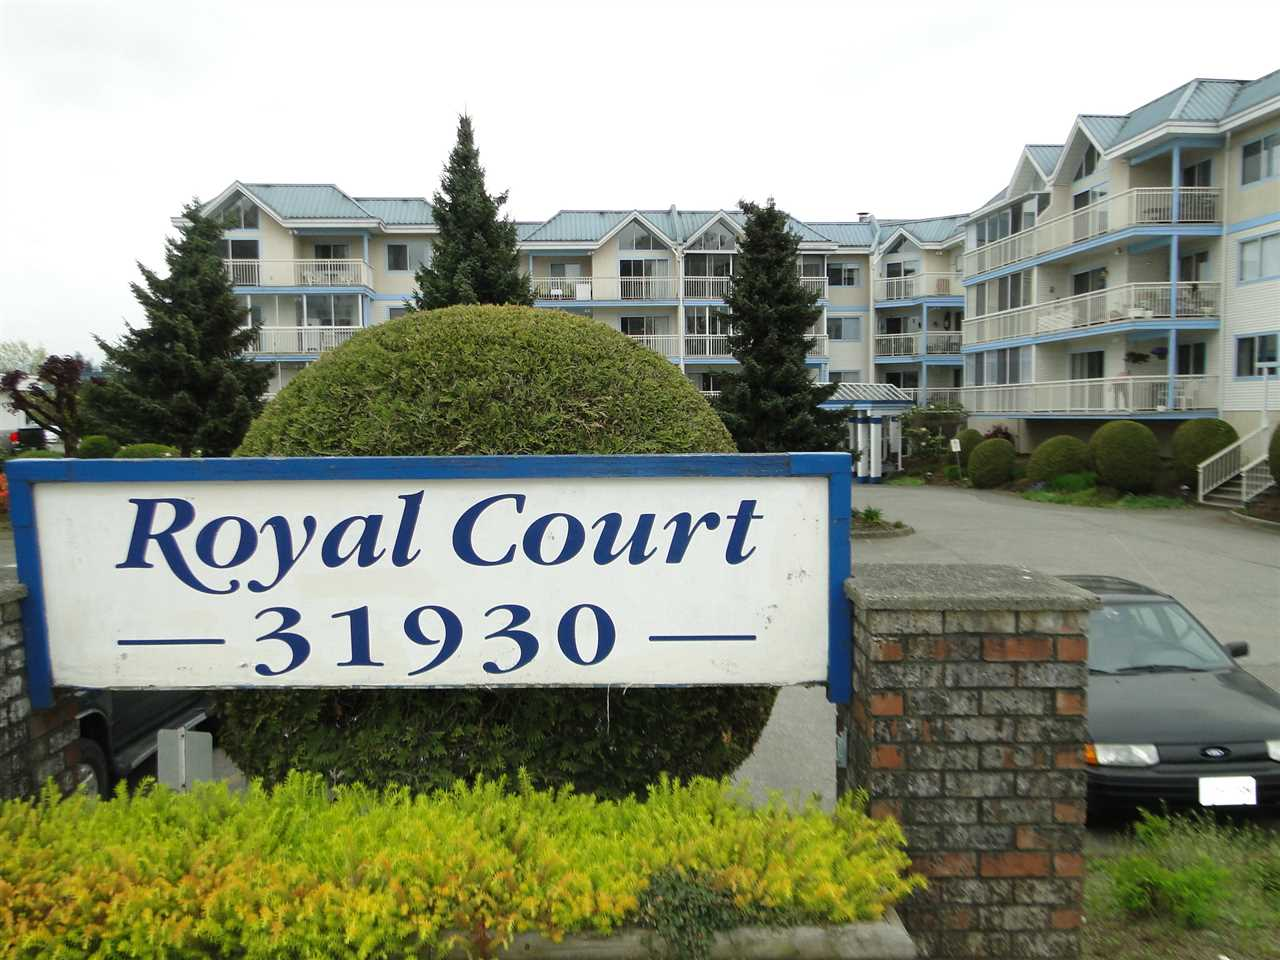 "Main Photo: 304 31930 OLD YALE Road in Abbotsford: Abbotsford West Condo for sale in ""Royal Court"" : MLS®# R2266107"